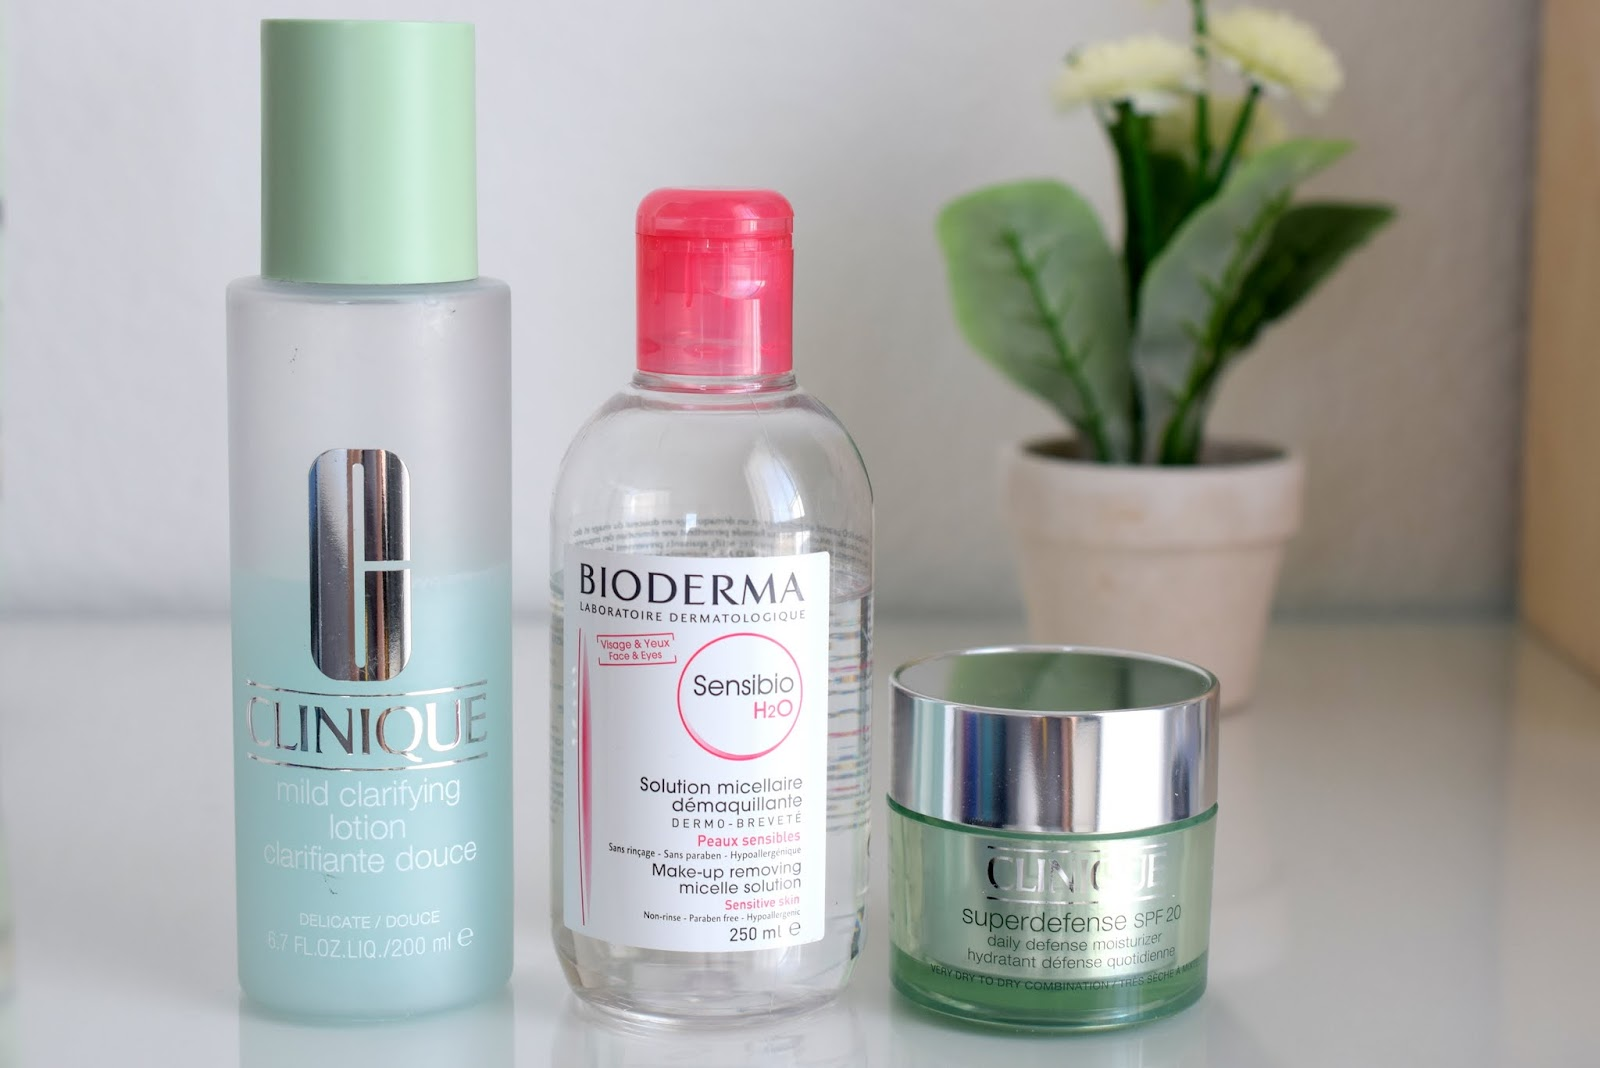 Beauty Favoriten im März: Clinique Mild Clarifying Lotion und Superdefense, Bioderma Sensibio